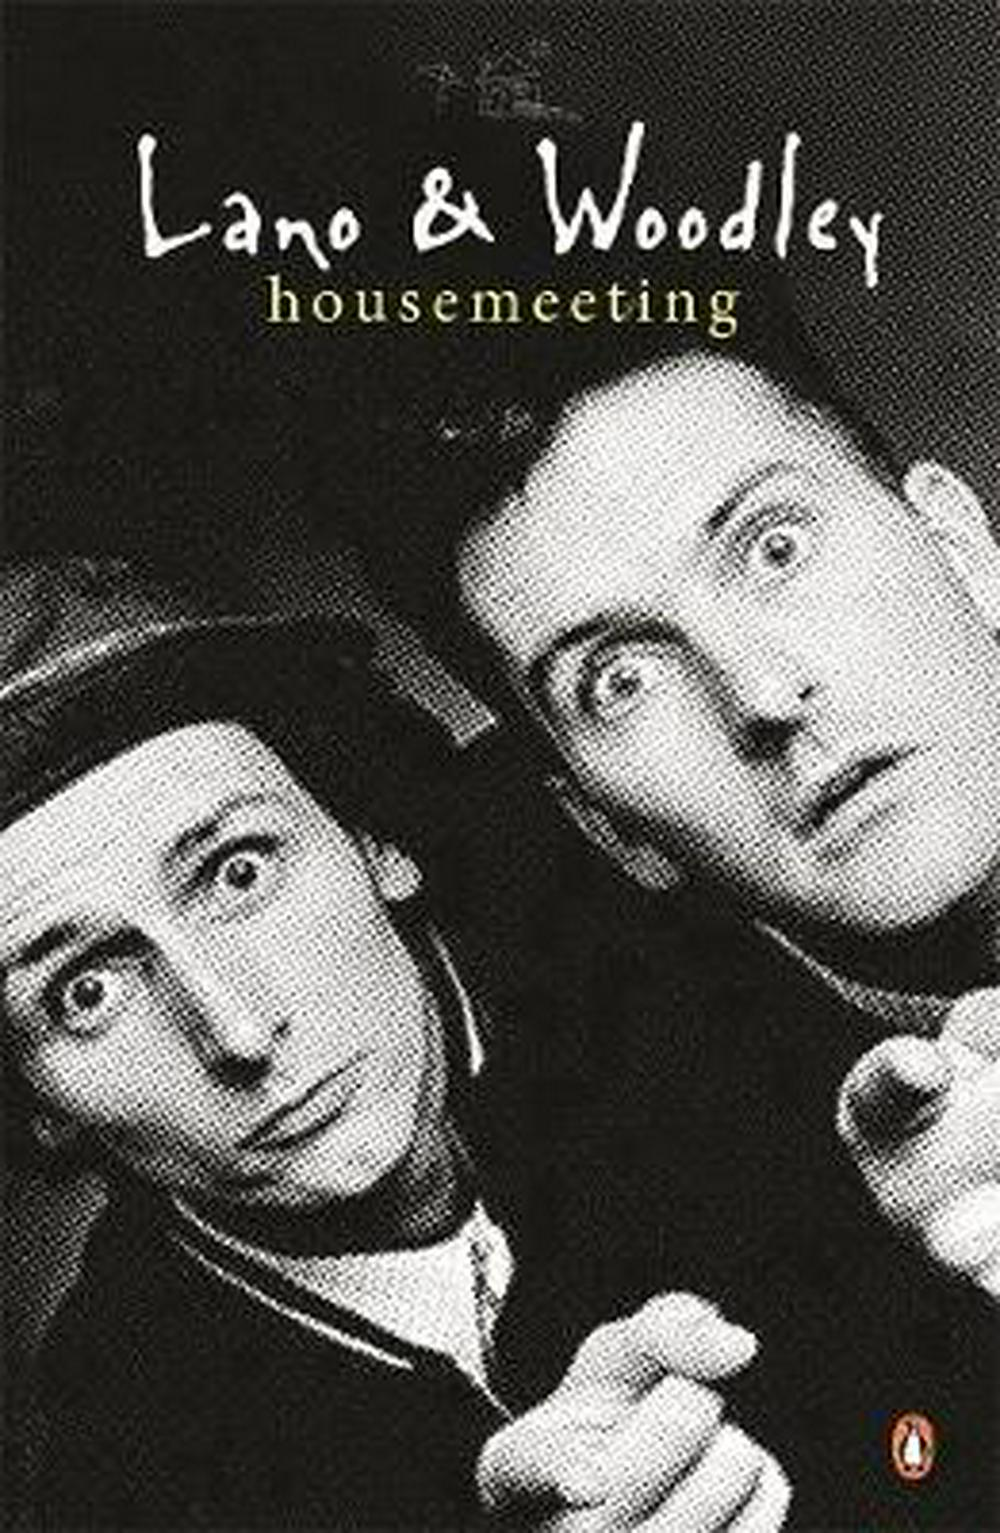 """Housemeeting by Colin and Woodley, Frank (""""Lano & Woodley"""") Lane, ISBN: 9780140260953"""